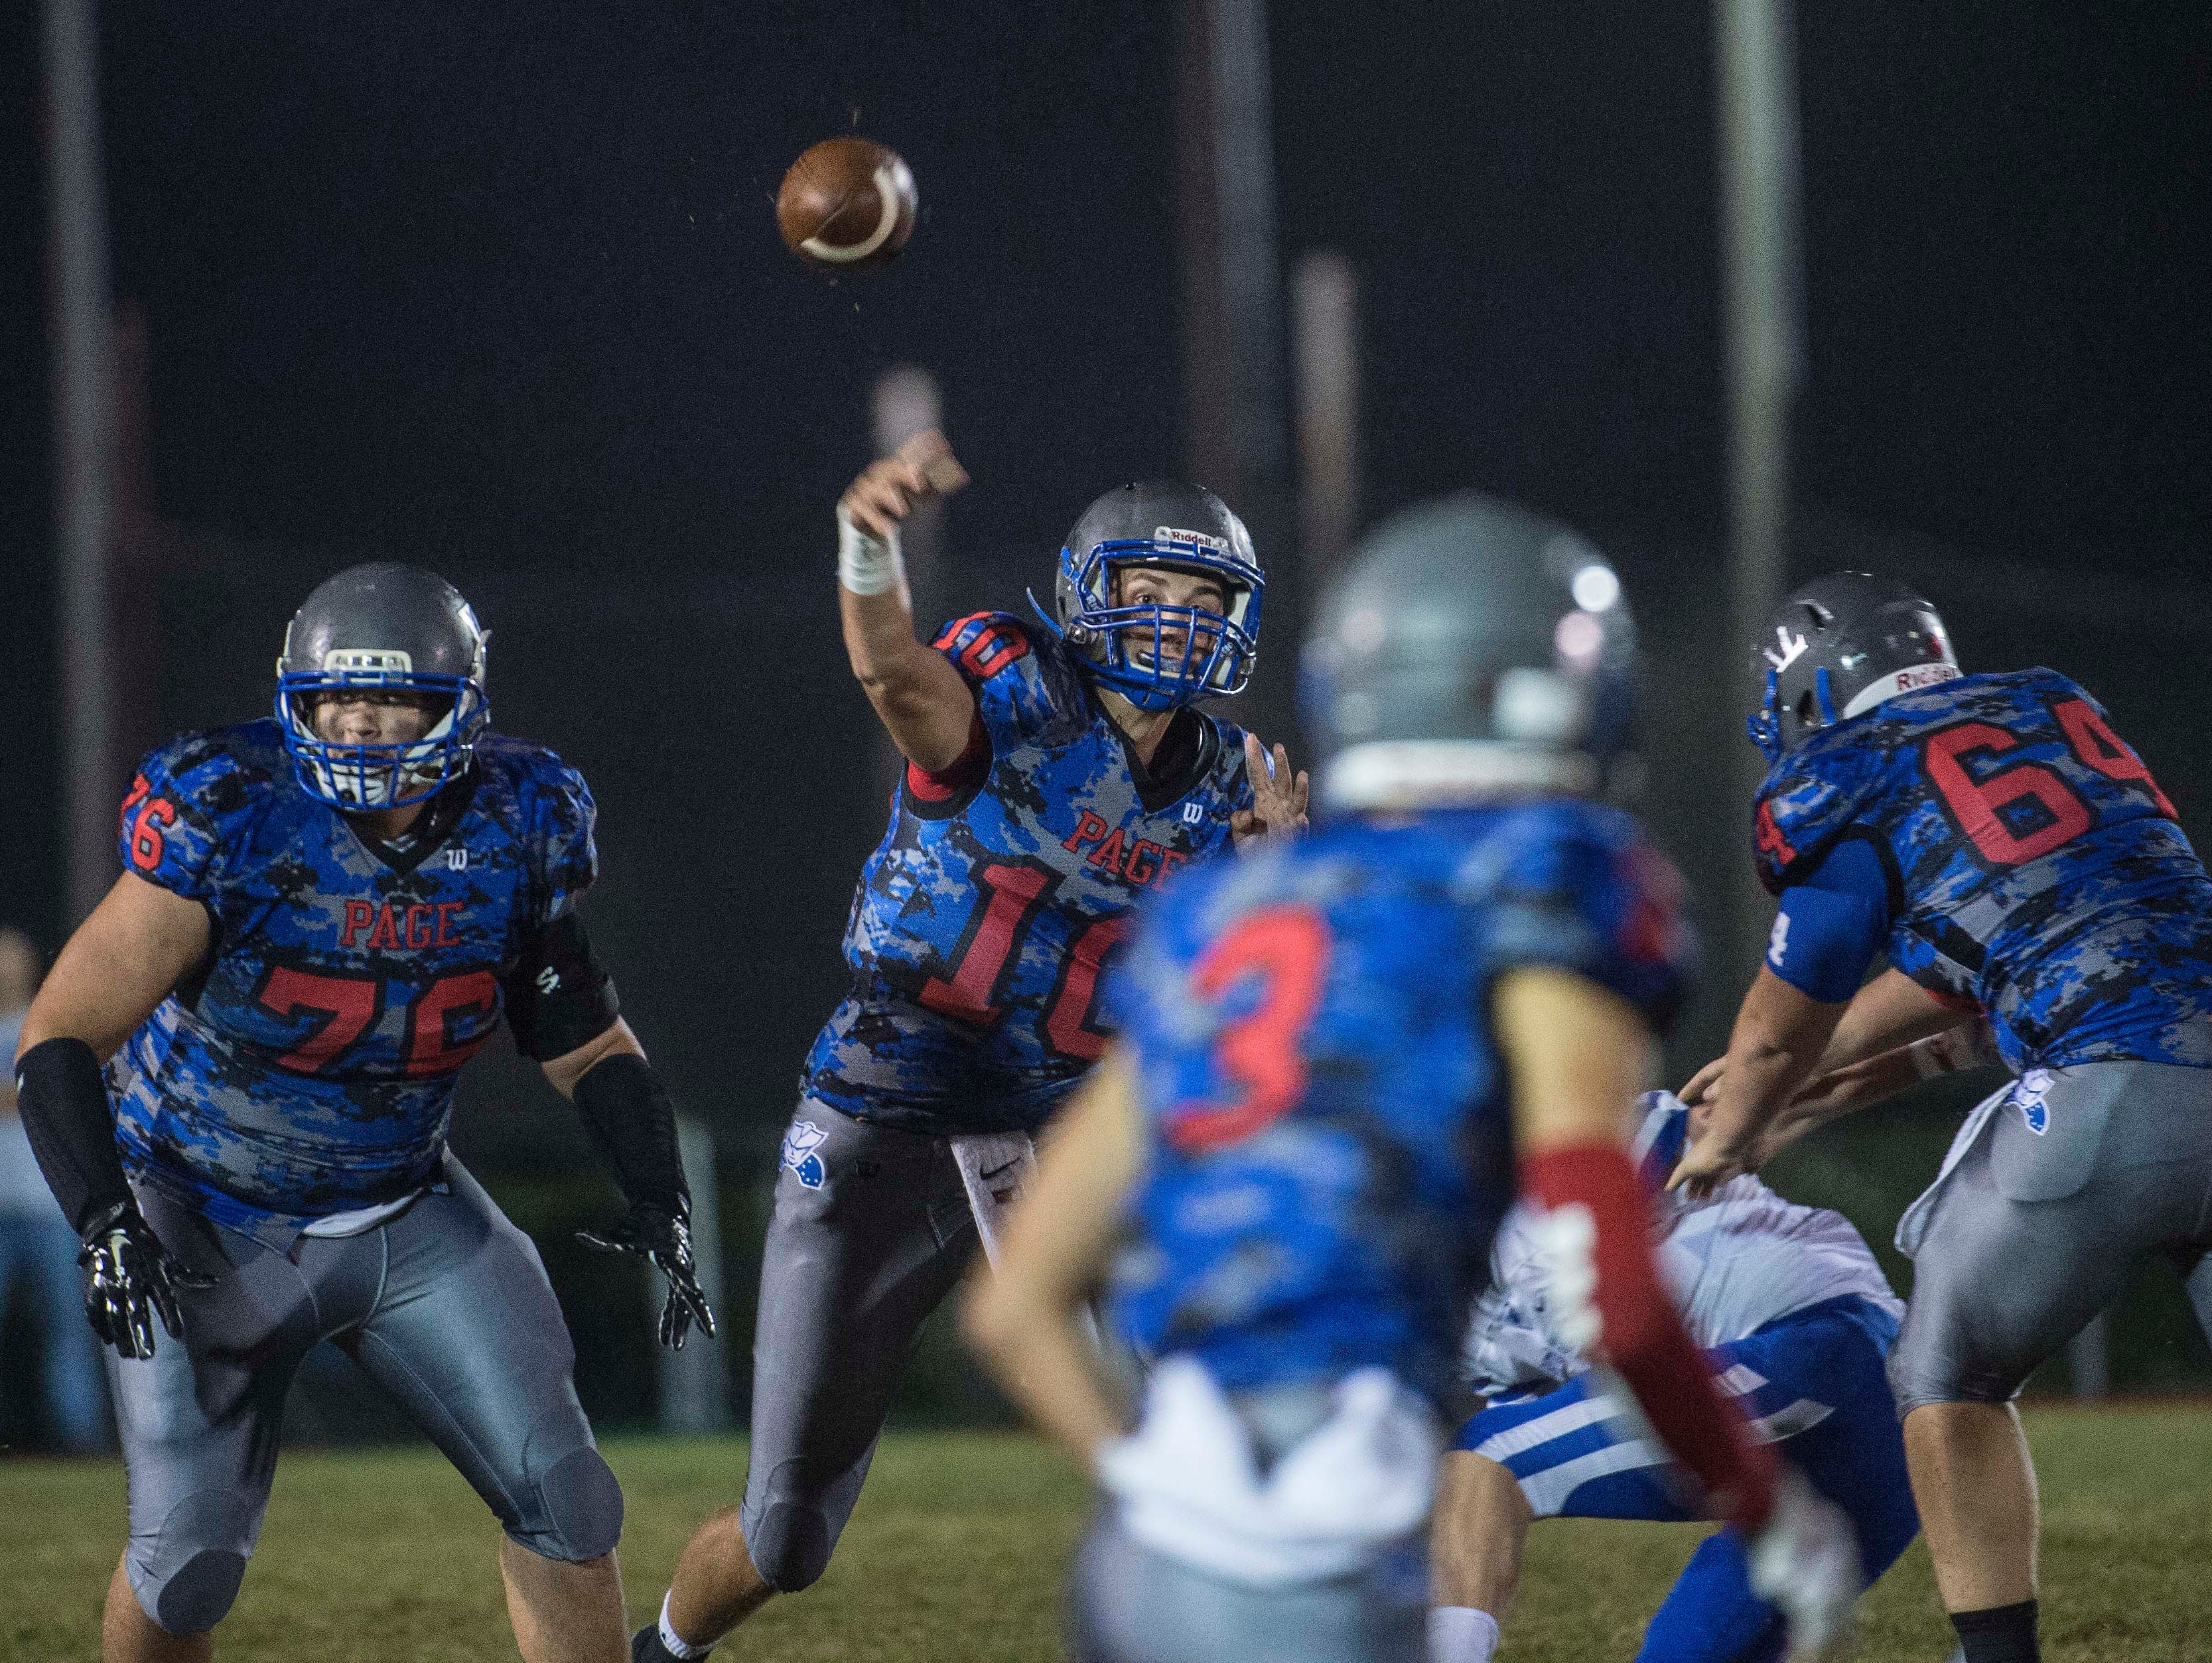 Page quarterback Michael Magochy throw for a touchdown at Page High School on Saturday Sept. 26, 2015, in Franklin in Tenn.